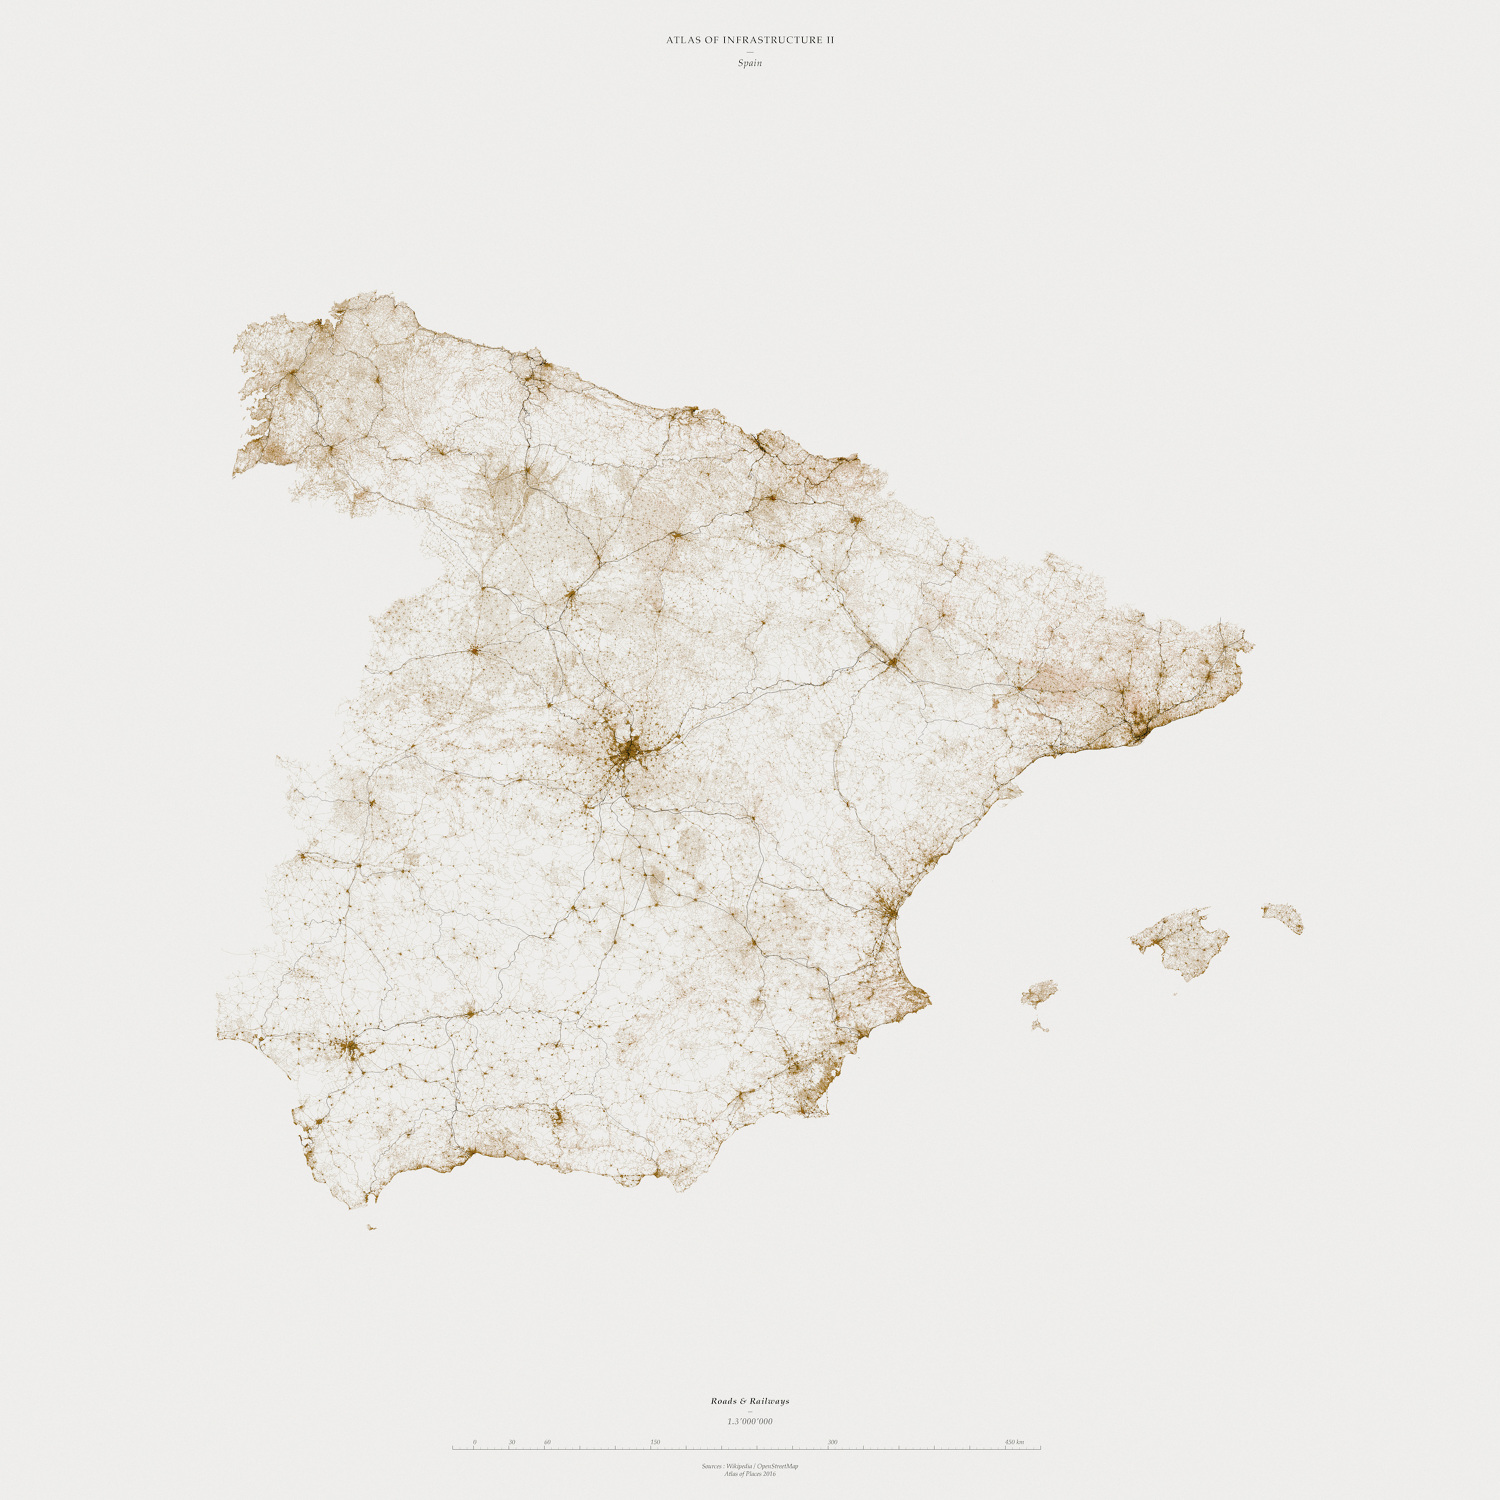 Muriz Djurdjevic and Thomas Paturet, ATLAS OF PLACES. Atlas of Infrastructure I&II. Spain